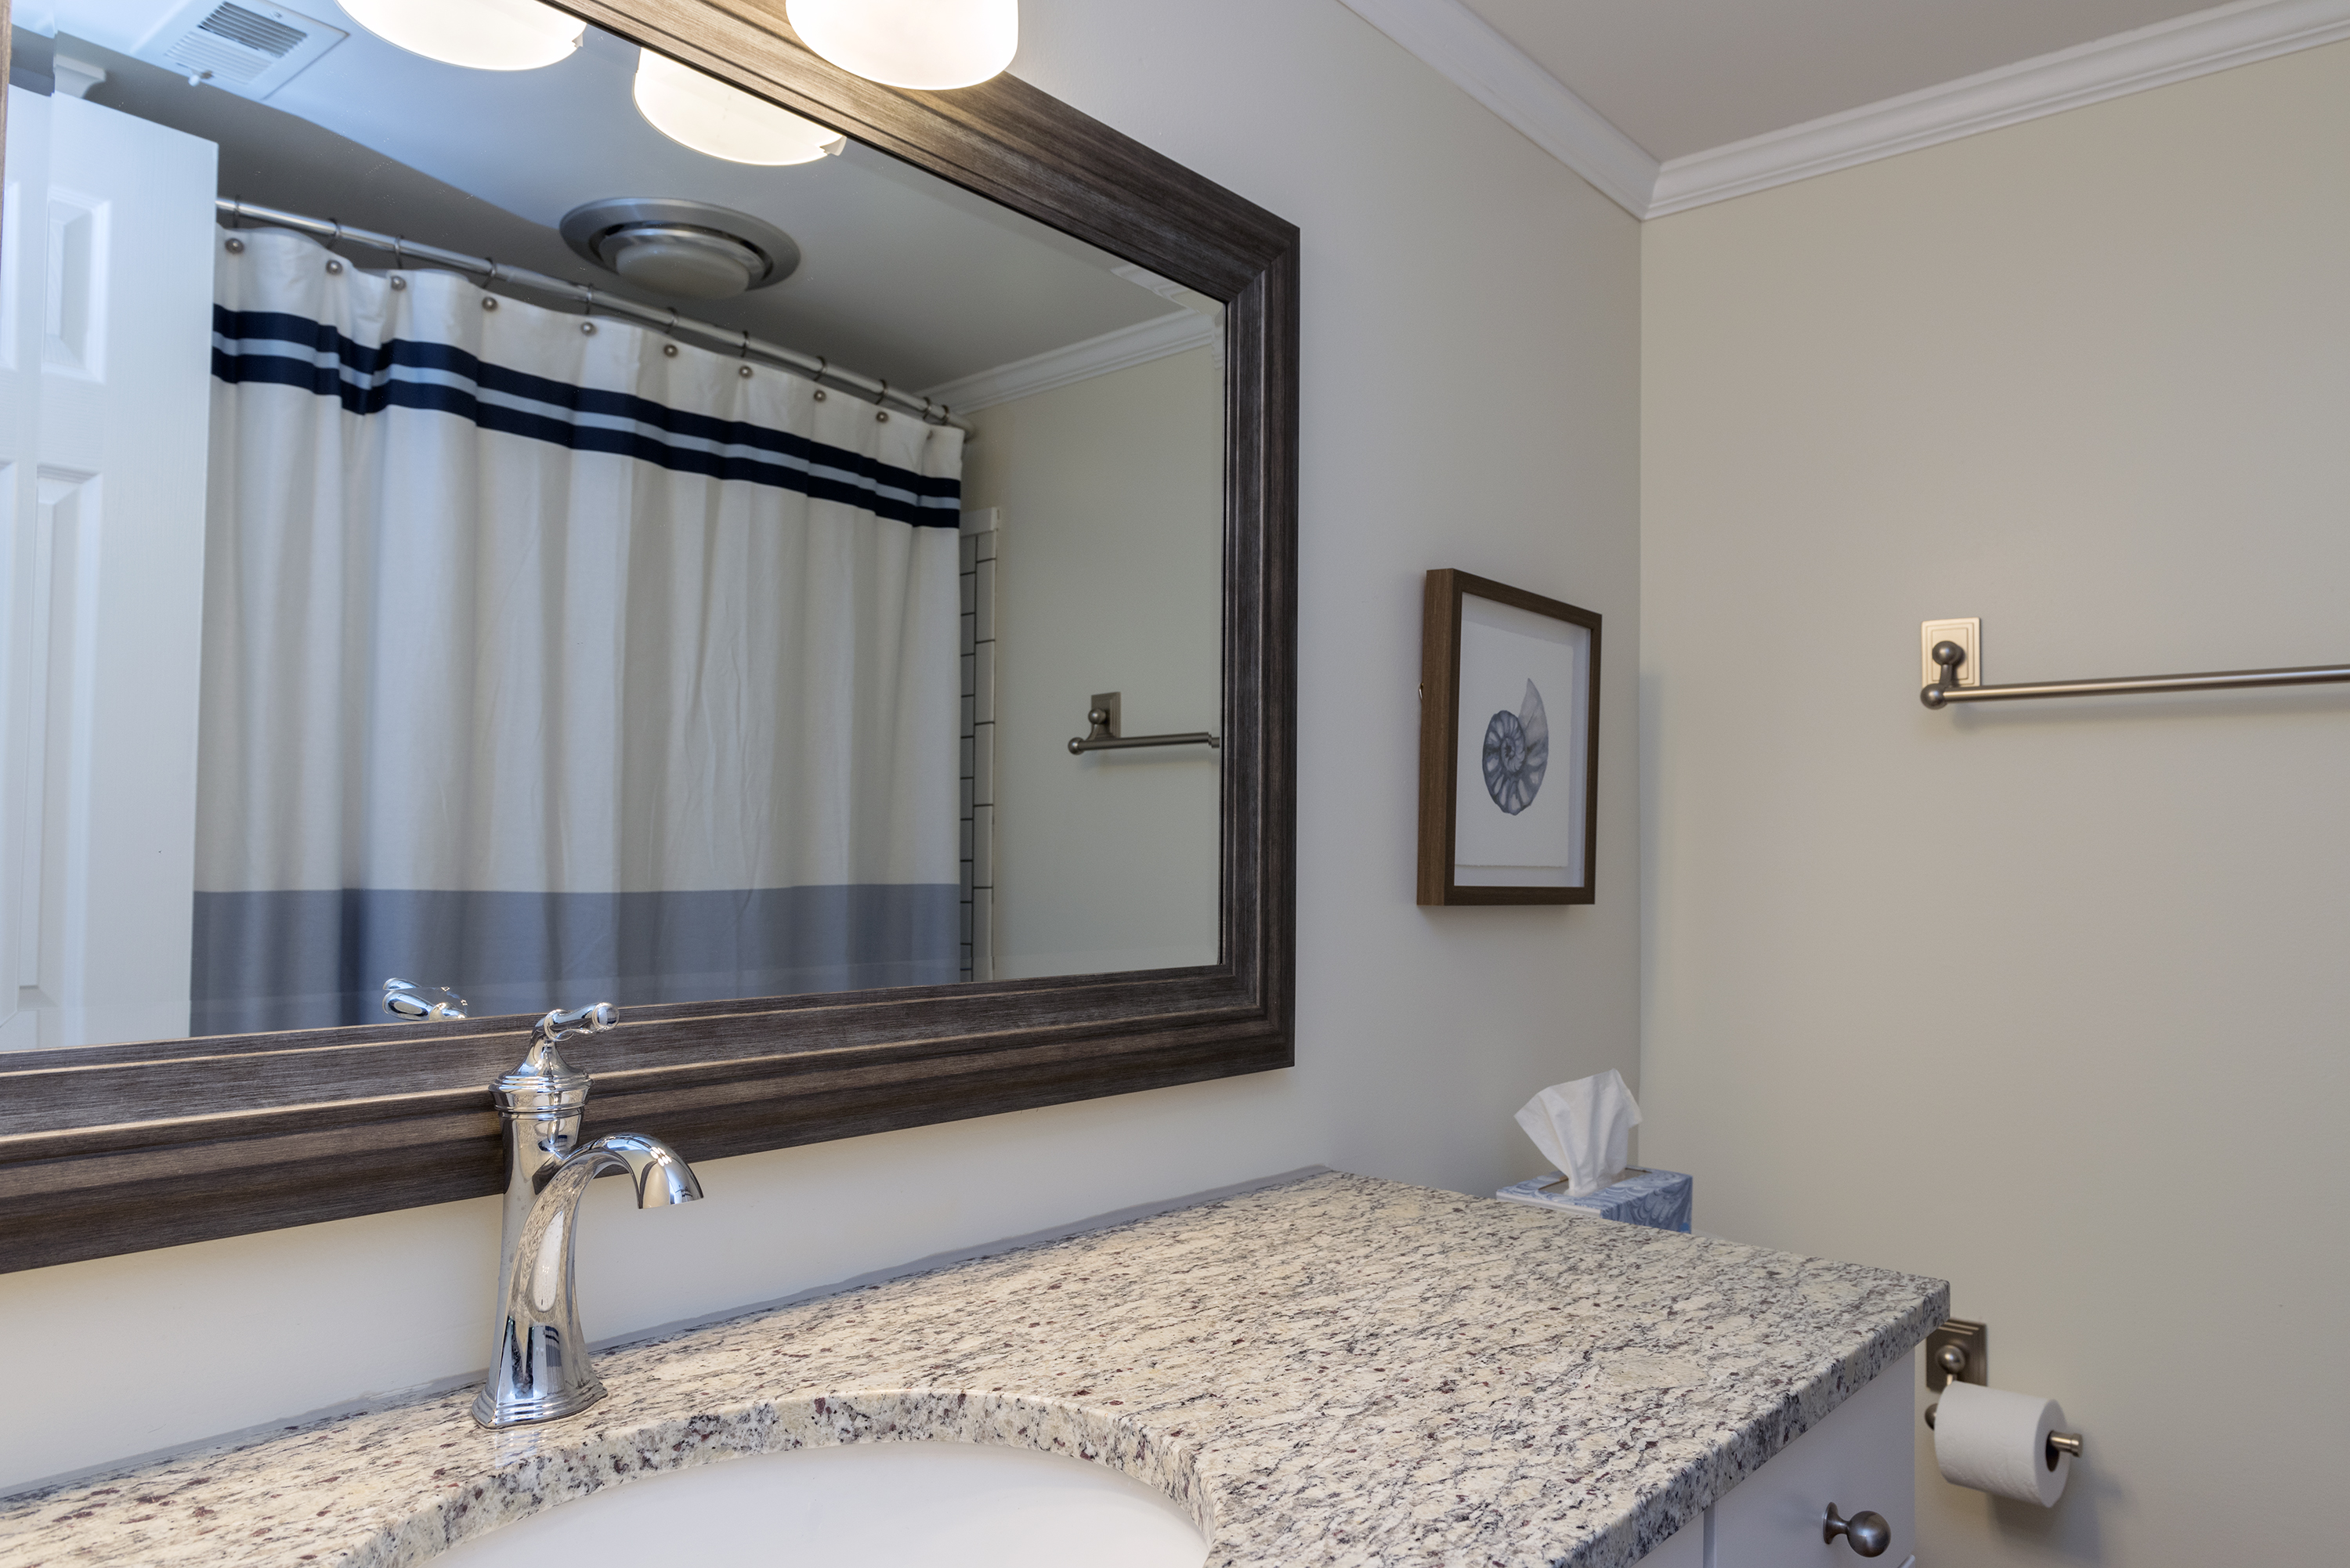 The hall bath is adjacent to the guest bedroom.  It has been renovated with granite counters and has a tiled tub/shower combo.